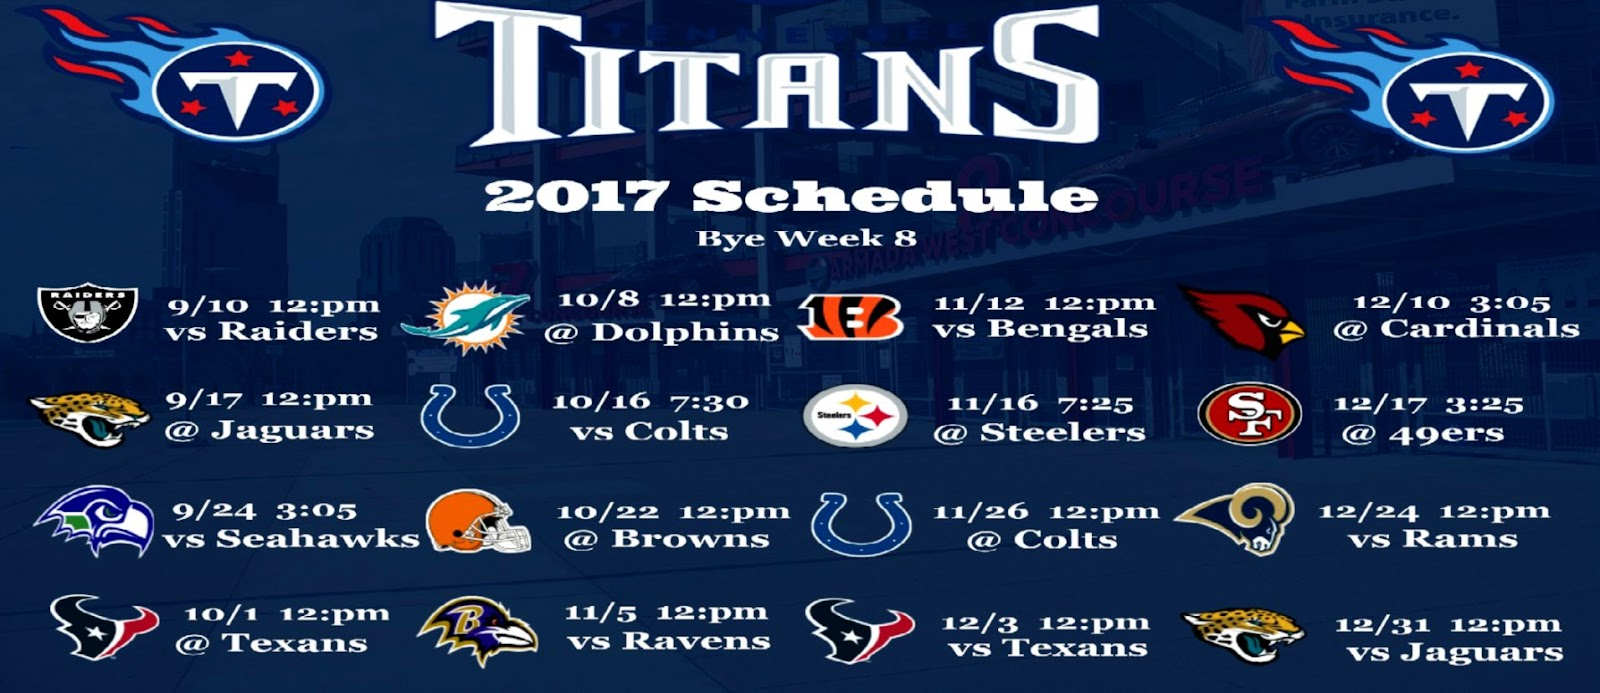 2cca3be07 Tennessee Titans Nfl Schedule Season Wallpaper Wallpapers Art